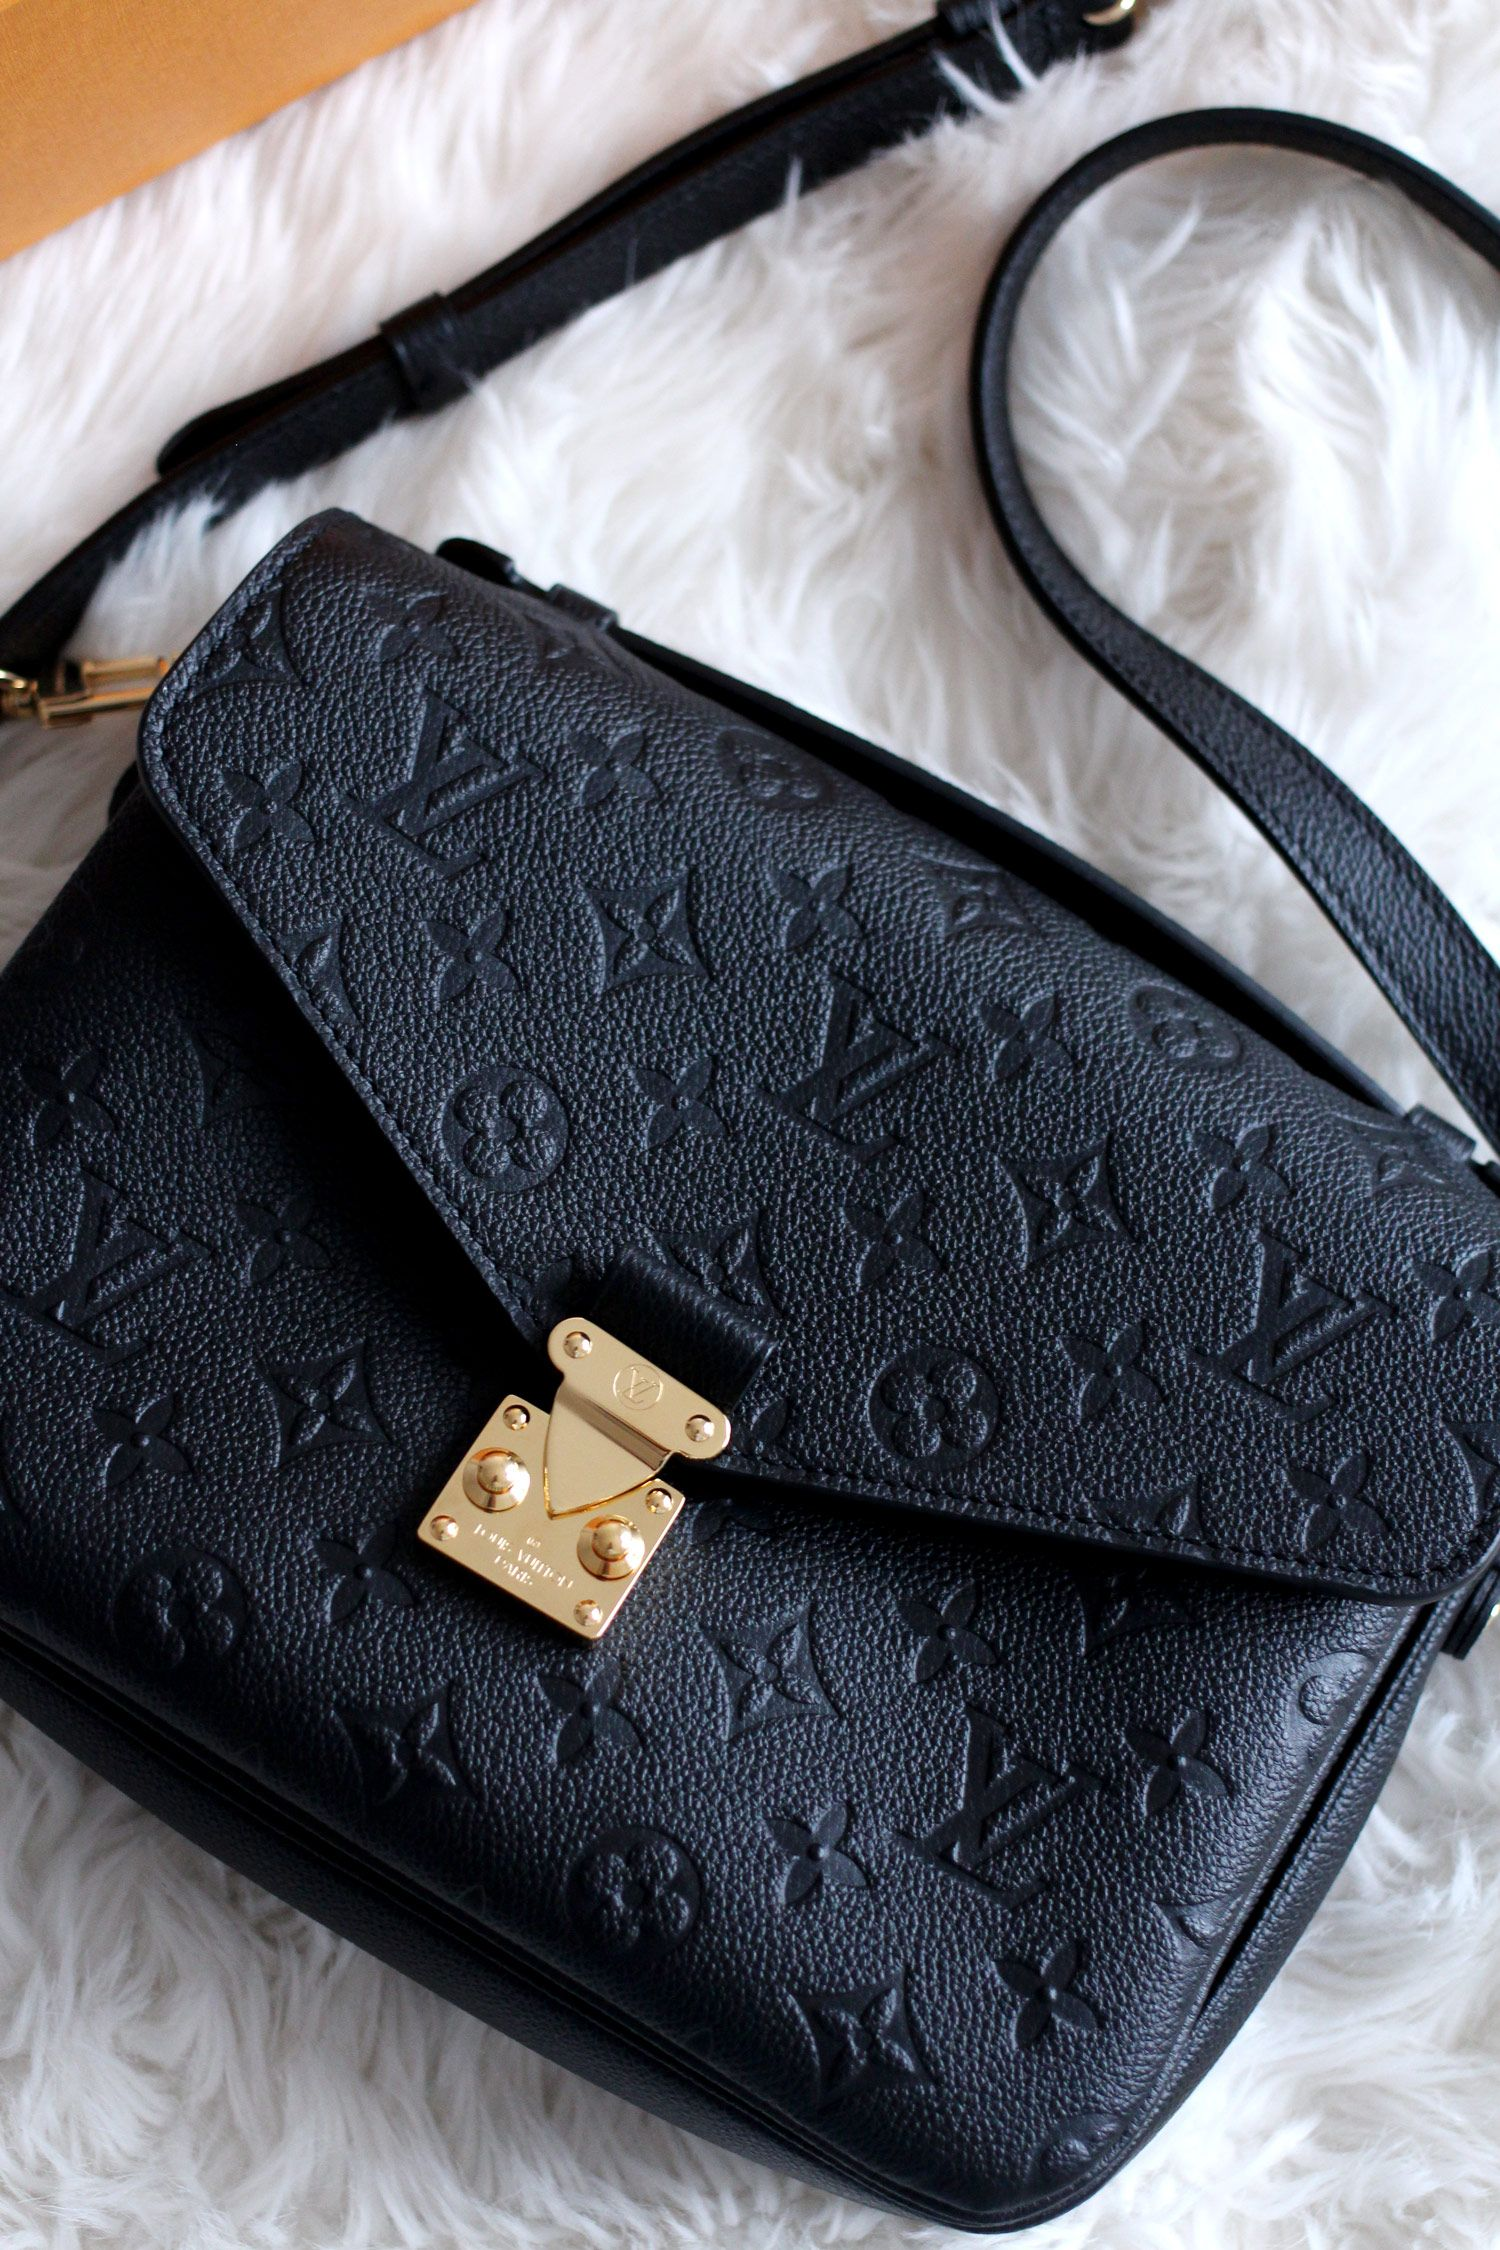 be2fb391e The Louis Vuitton Pochette Metis in black monogram empreinte leather with  gold hardware - review and